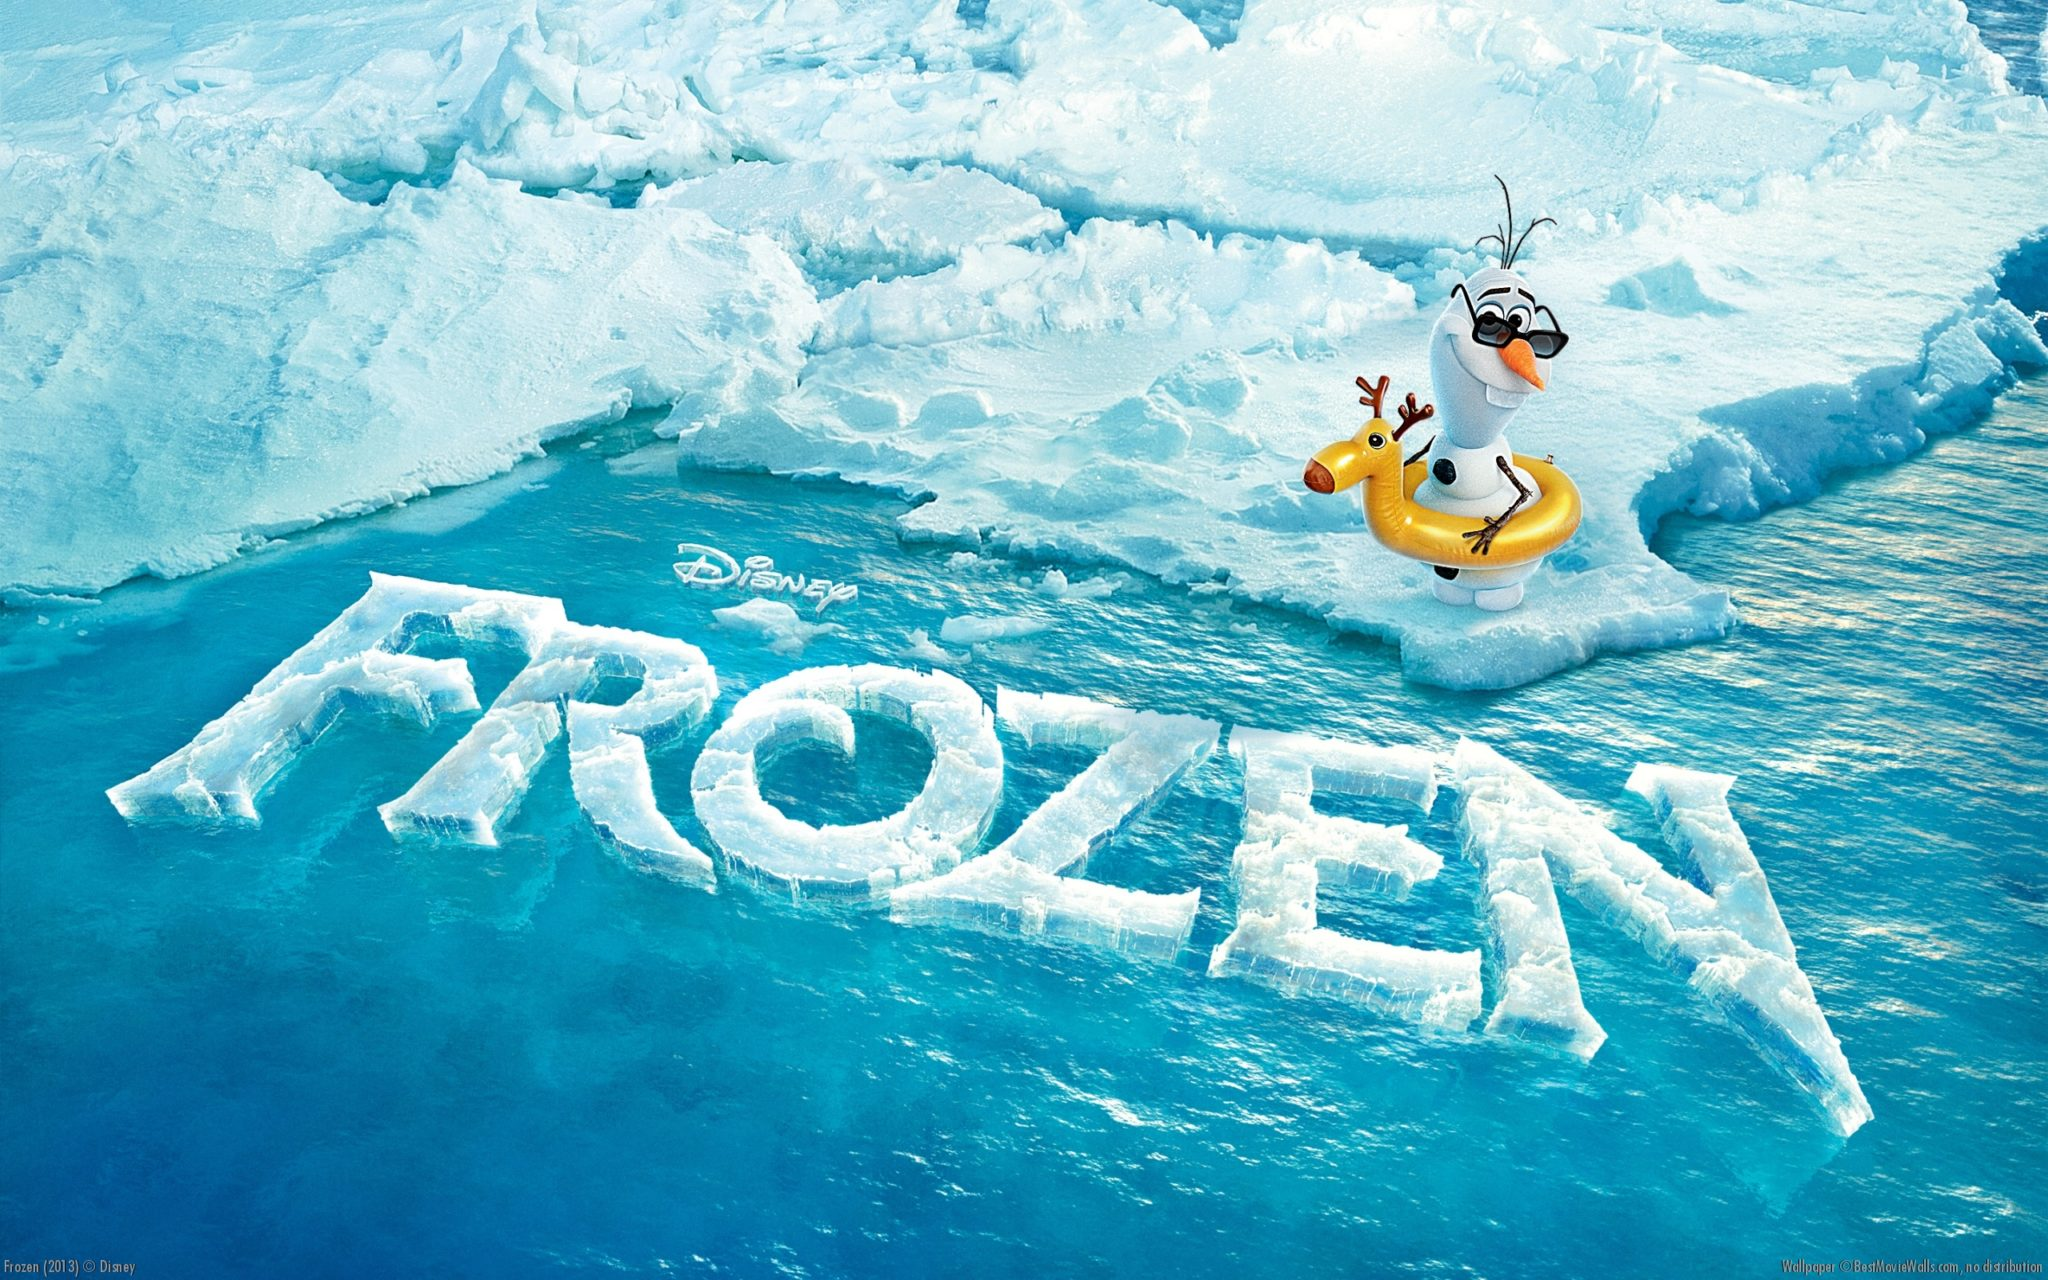 The Most Amazing Best Frozen Wallpapers On Web Rotoscopers